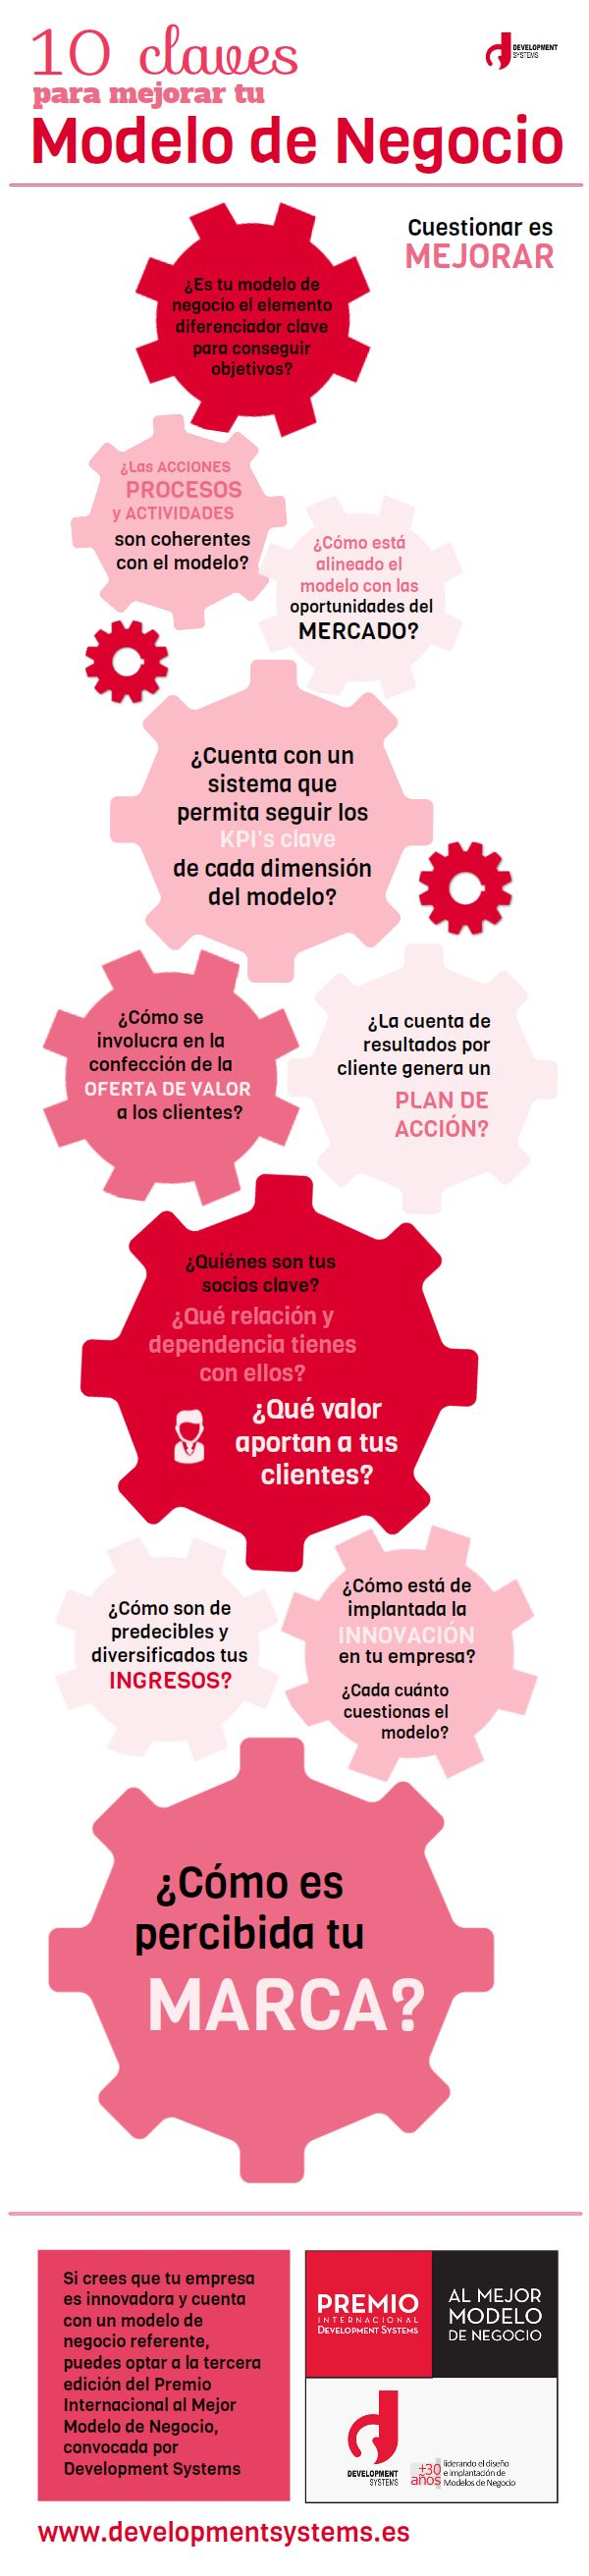 10 claves para mejorar tu modelo de negocio #infografia #infographic #marketing